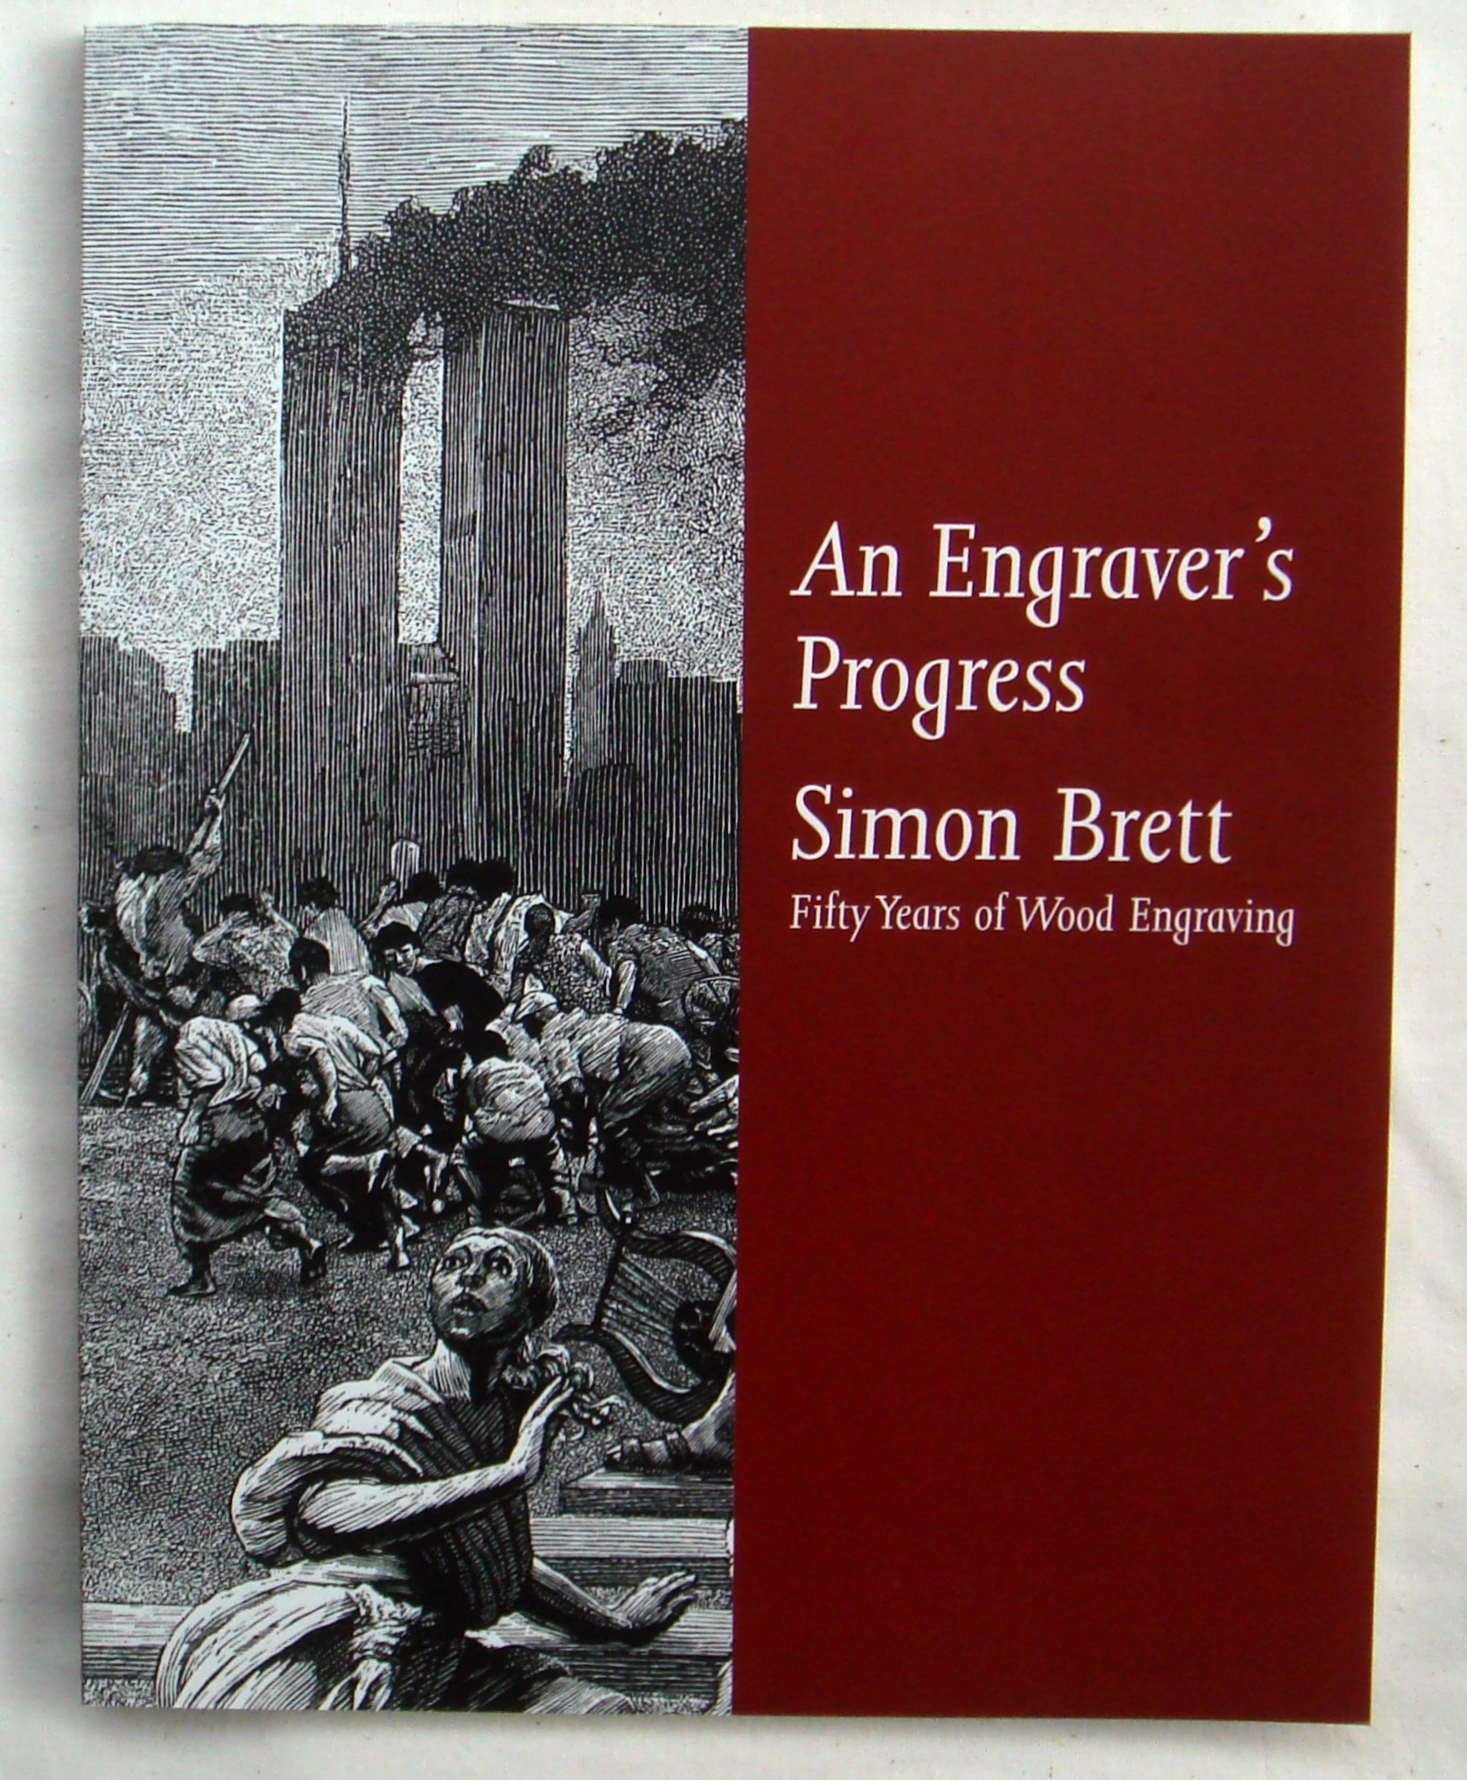 an engravers progress simon brett fifty years of wood engraving